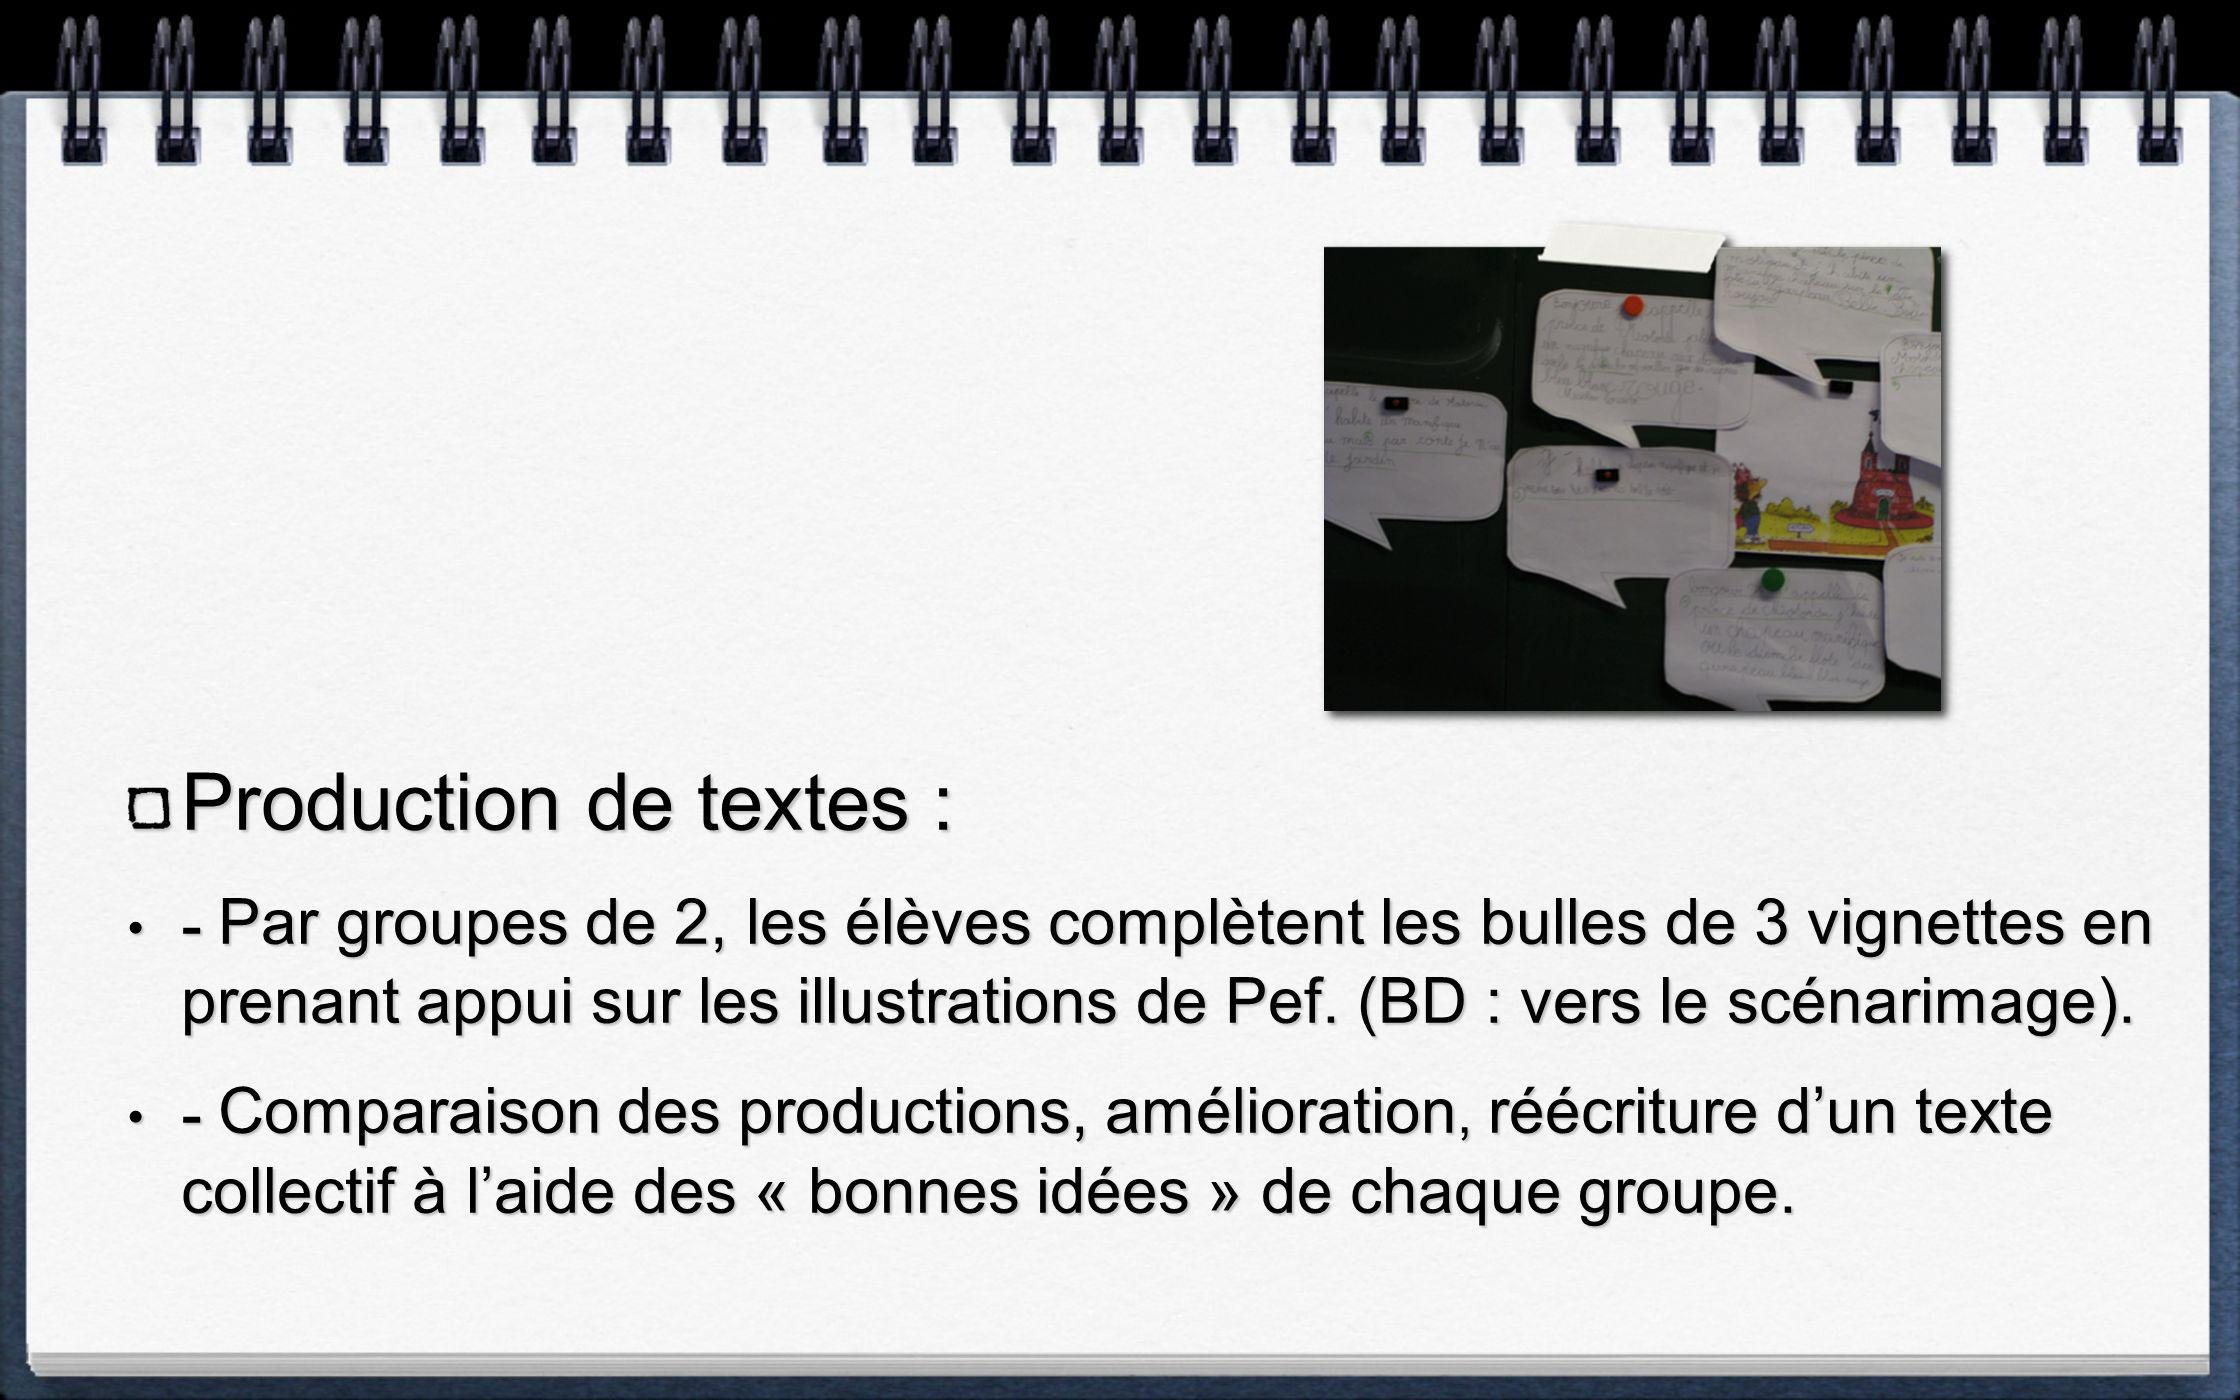 Production de textes :